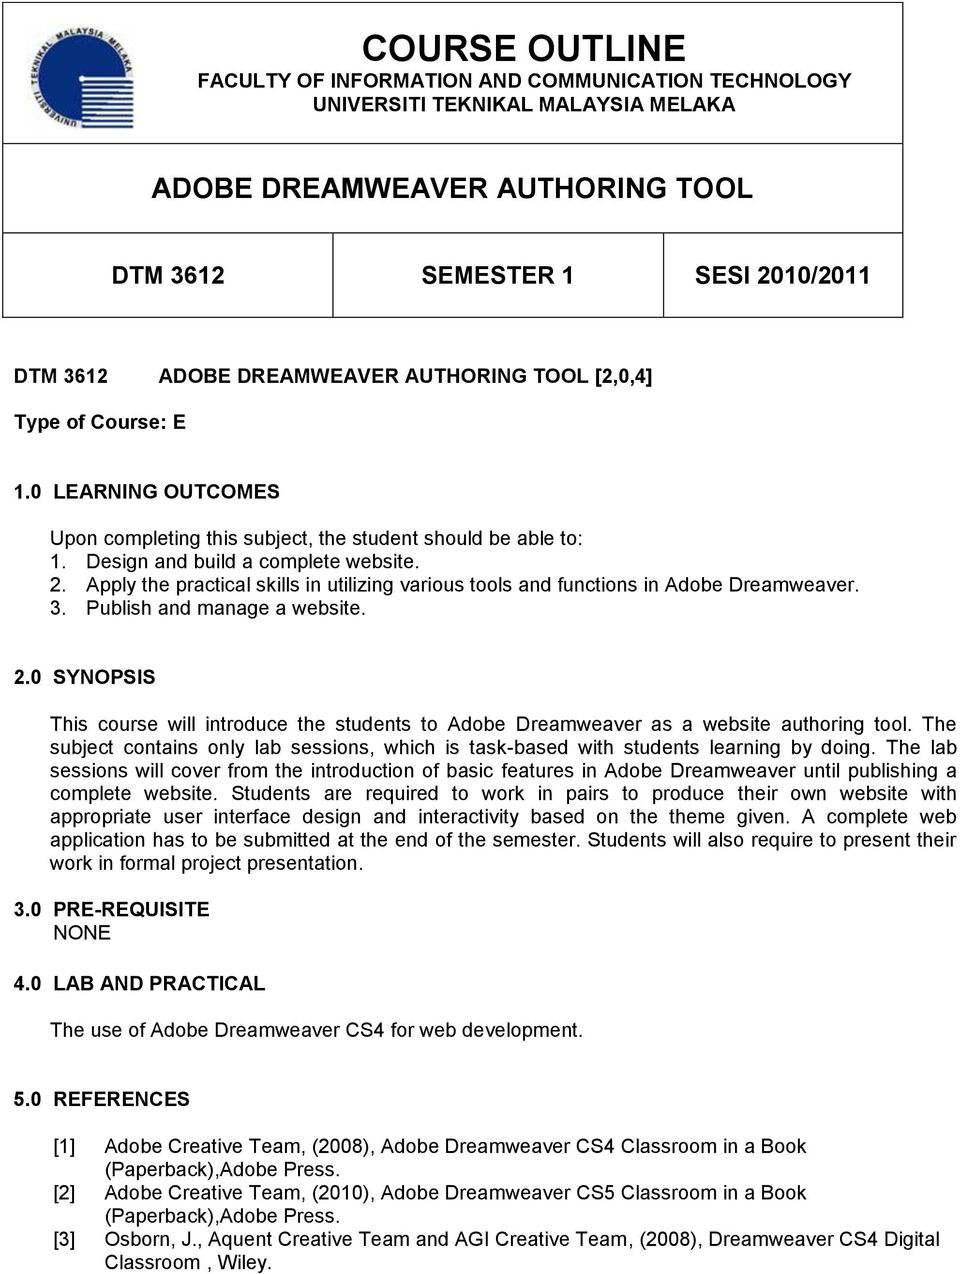 Apply the practical skills in utilizing various tools and functions in Adobe Dreamweaver. 3. Publish and manage a website. 2.